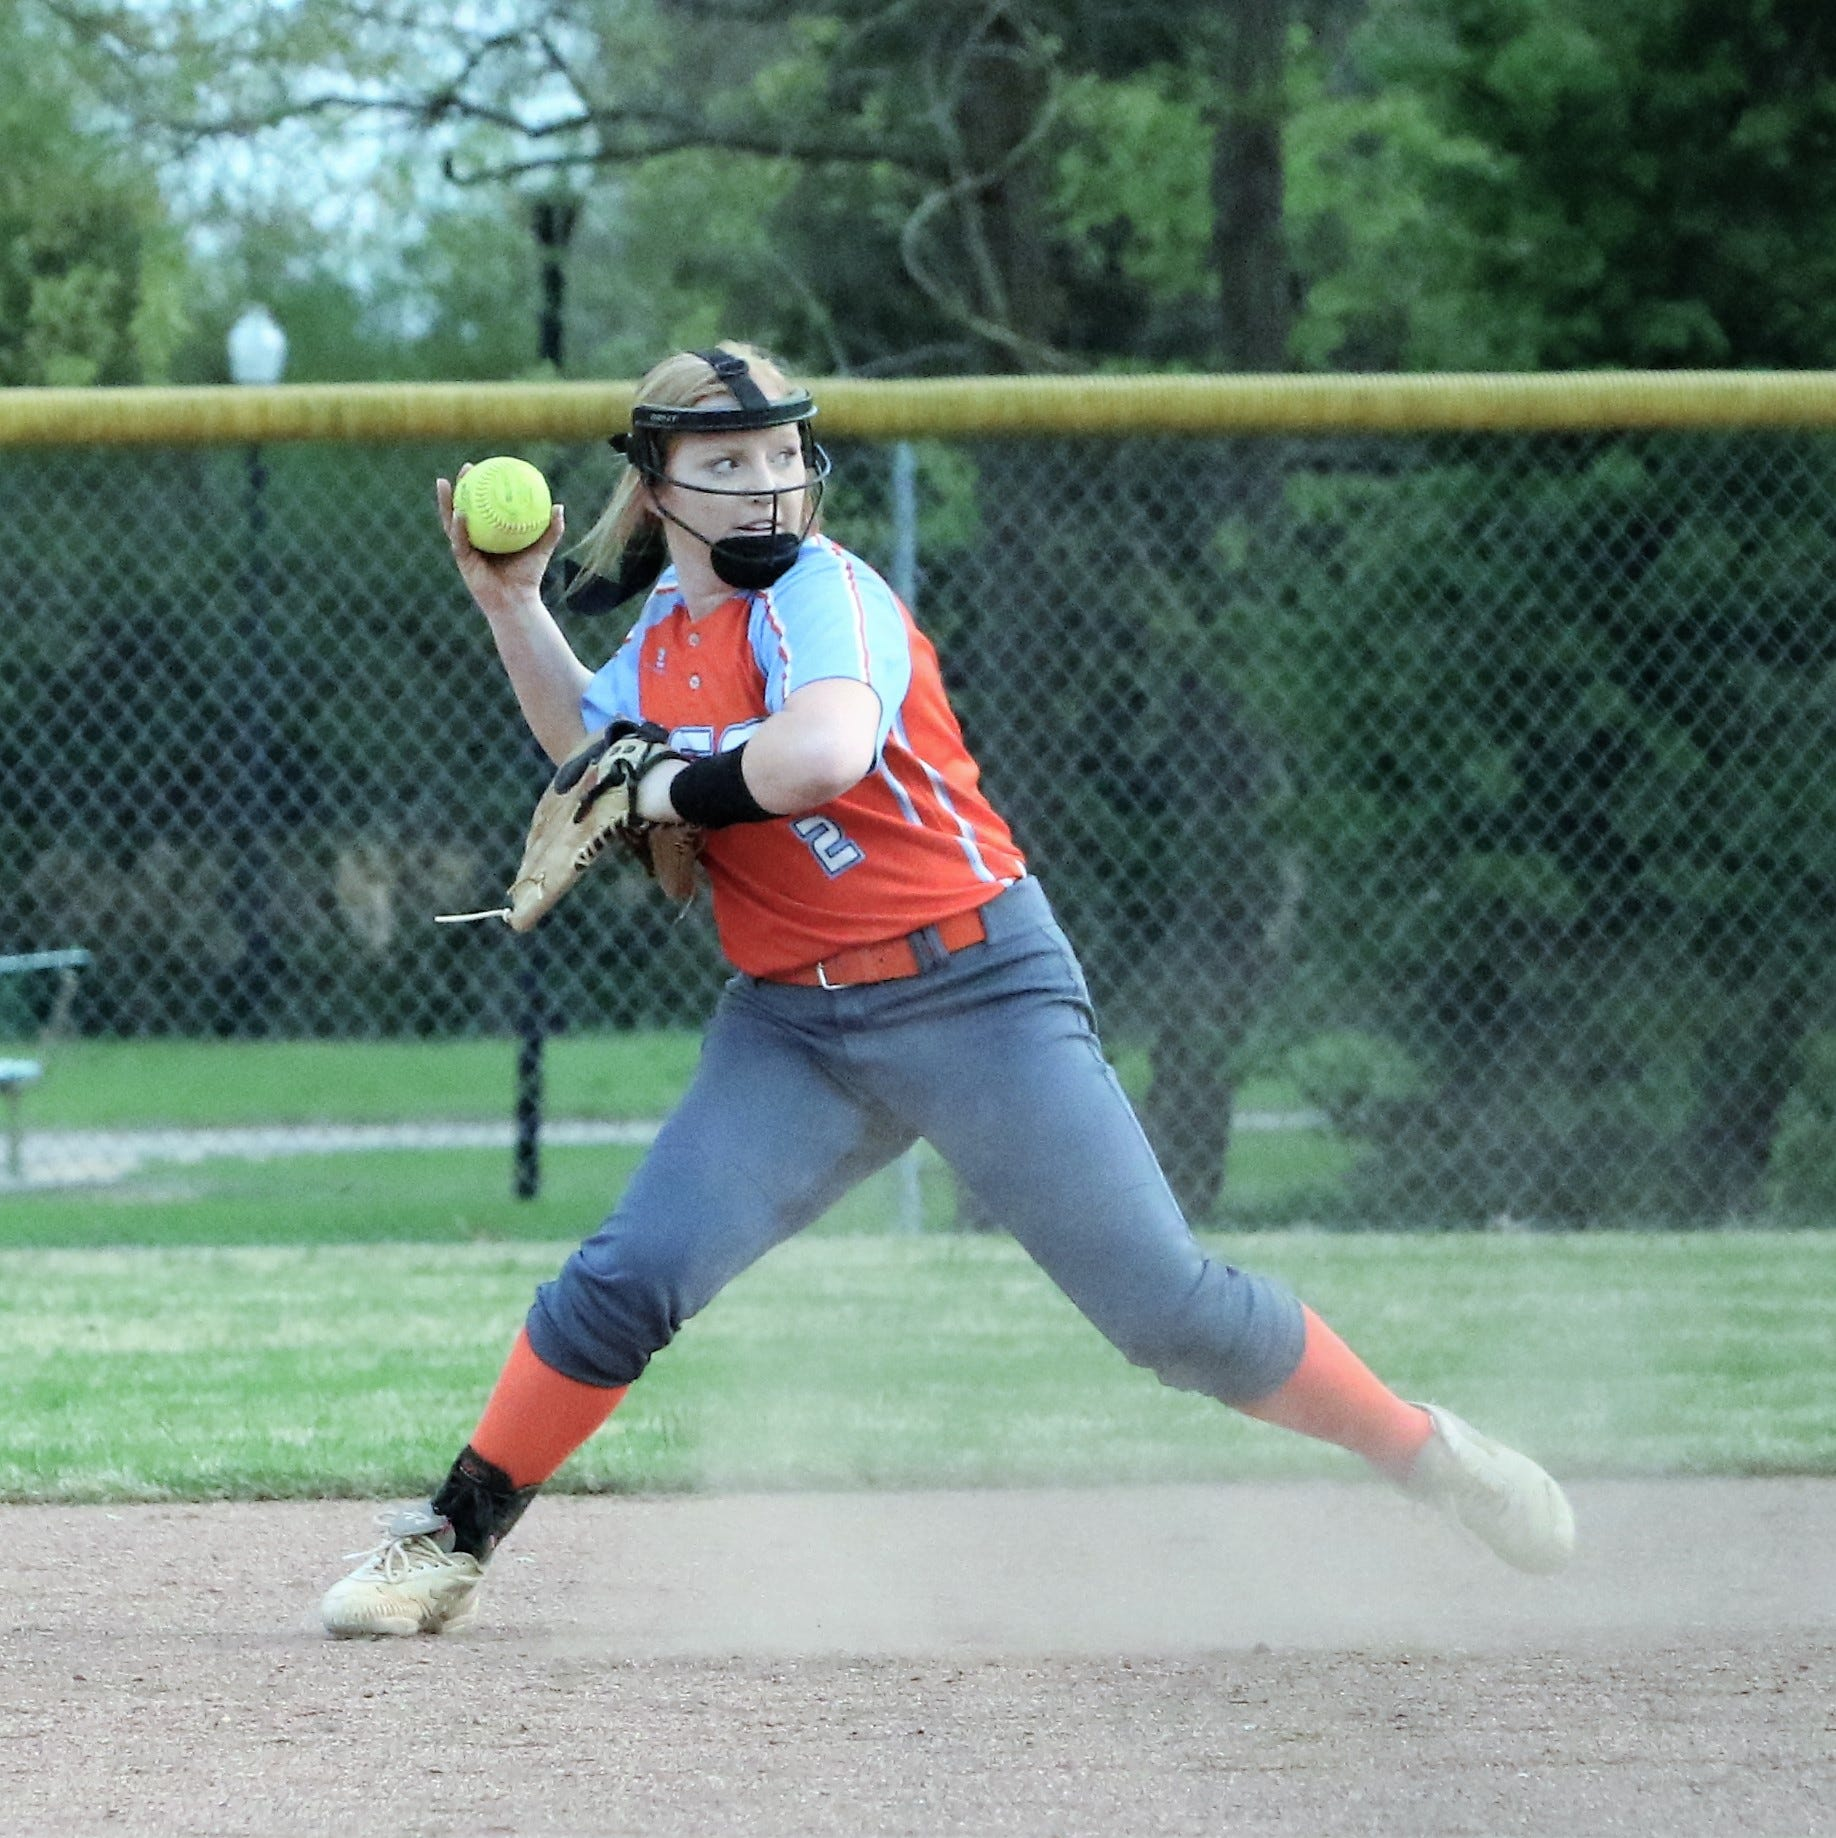 South Gibson moves up to No. 2 in Jackson area softball Dirty Dozen after Week 7